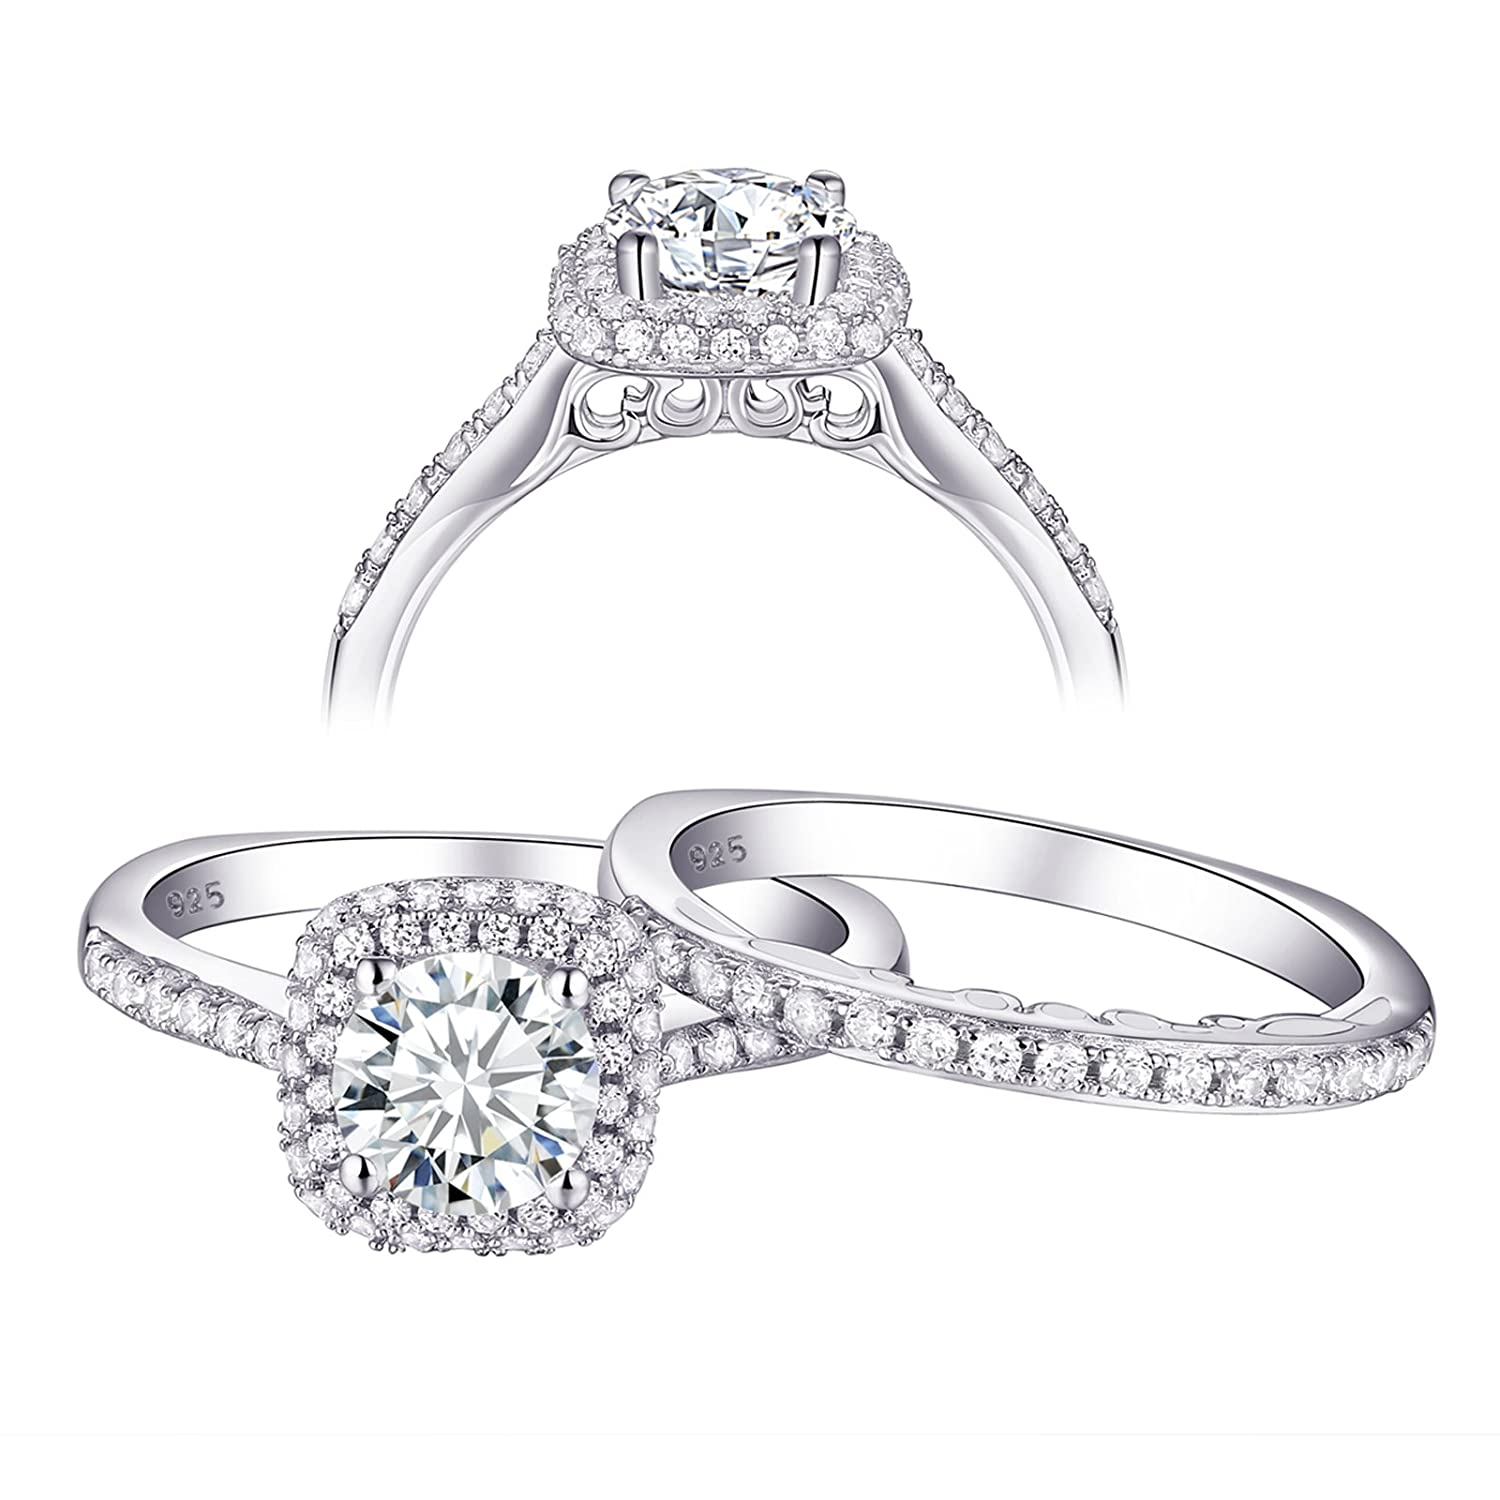 Newshe 1.6ct Round 925 Sterling Silver AAA Cz Wedding Engagement Ring Set for Woman Size 5-10 Newshe Jewellery JR4922_SS